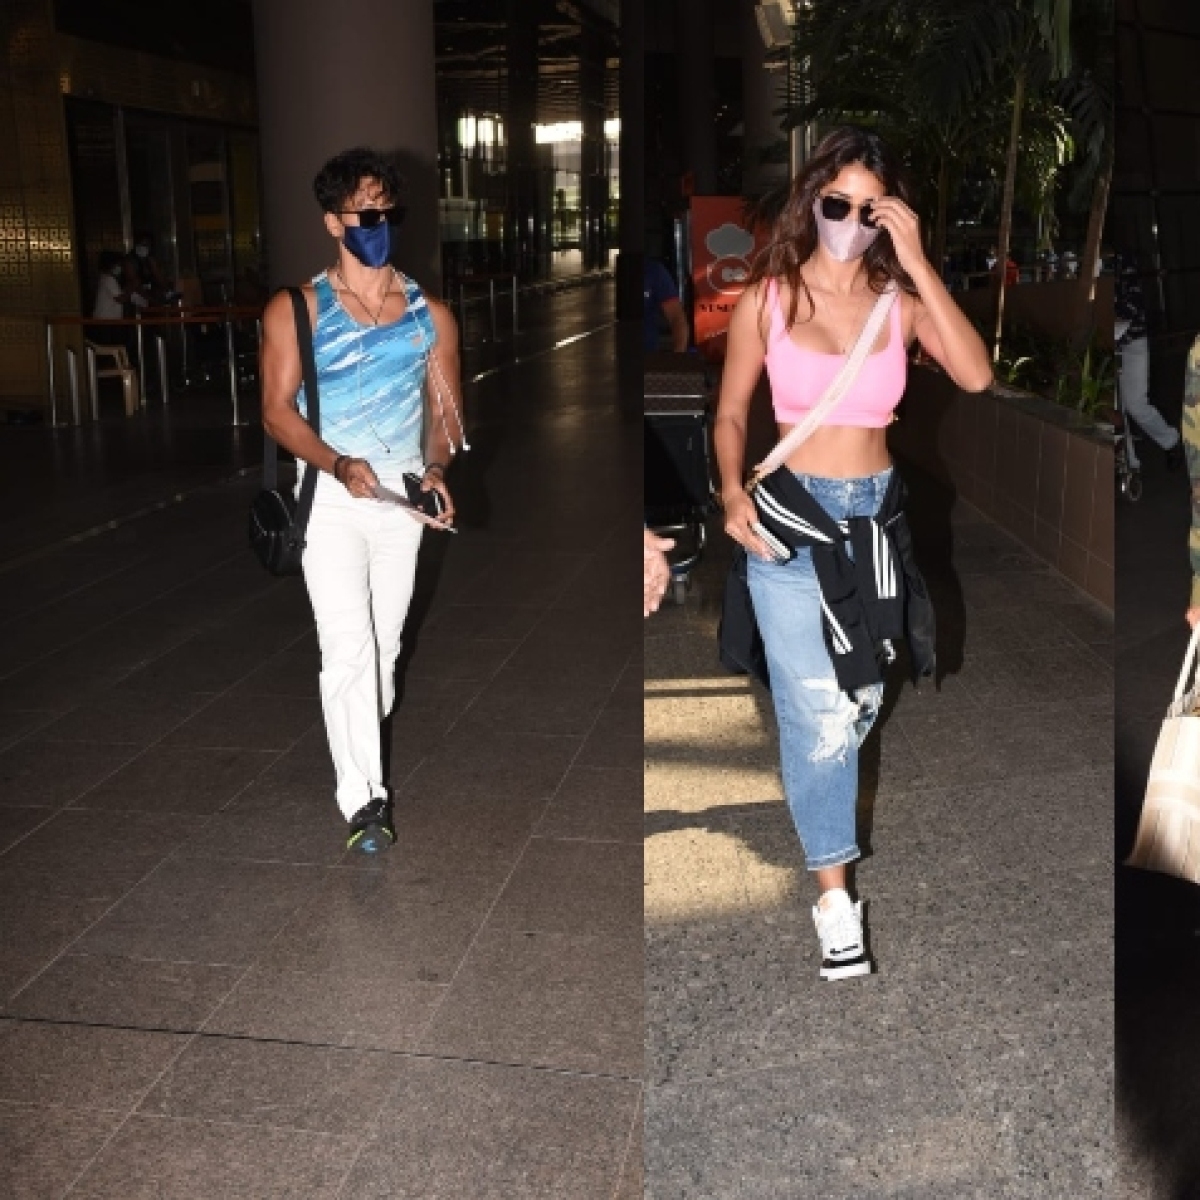 In Pics: Ranbir-Alia and Tiger-Disha arrive in Mumbai after their Maldives 'baecation' amid COVID-19 pandemic